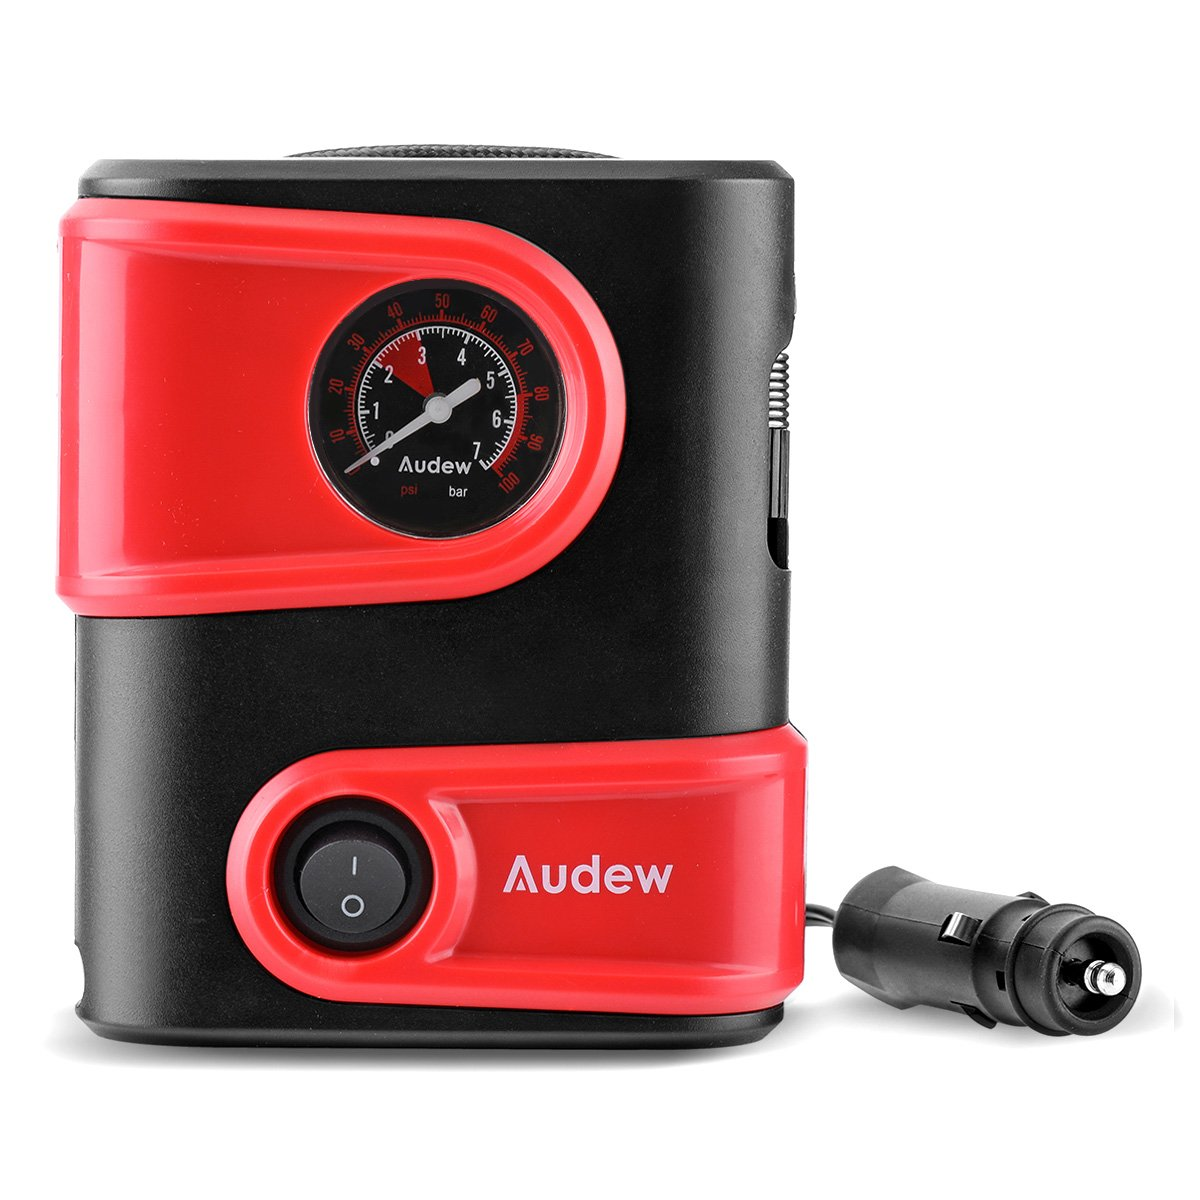 Audew Portable Air Compressor, Tyre Inflator, Car Tyre Pump,ABS 12V,Fit For Cars/Trucks/Bicycles/RVs/Auto